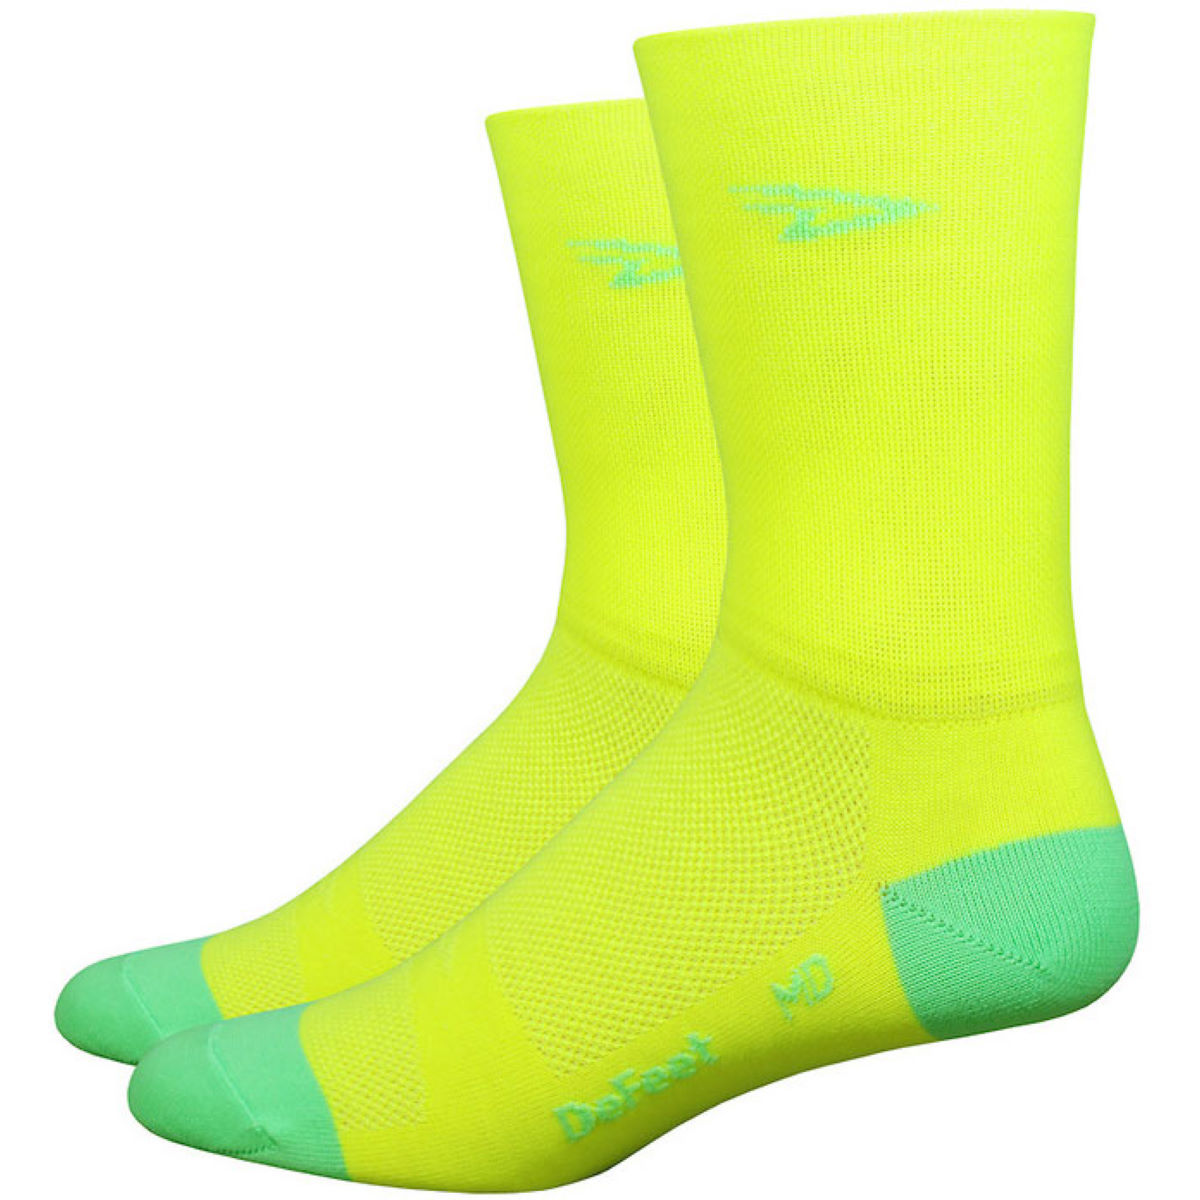 Chaussettes hautes DeFeet Aireator Hi-Vis - S Yellow/Green